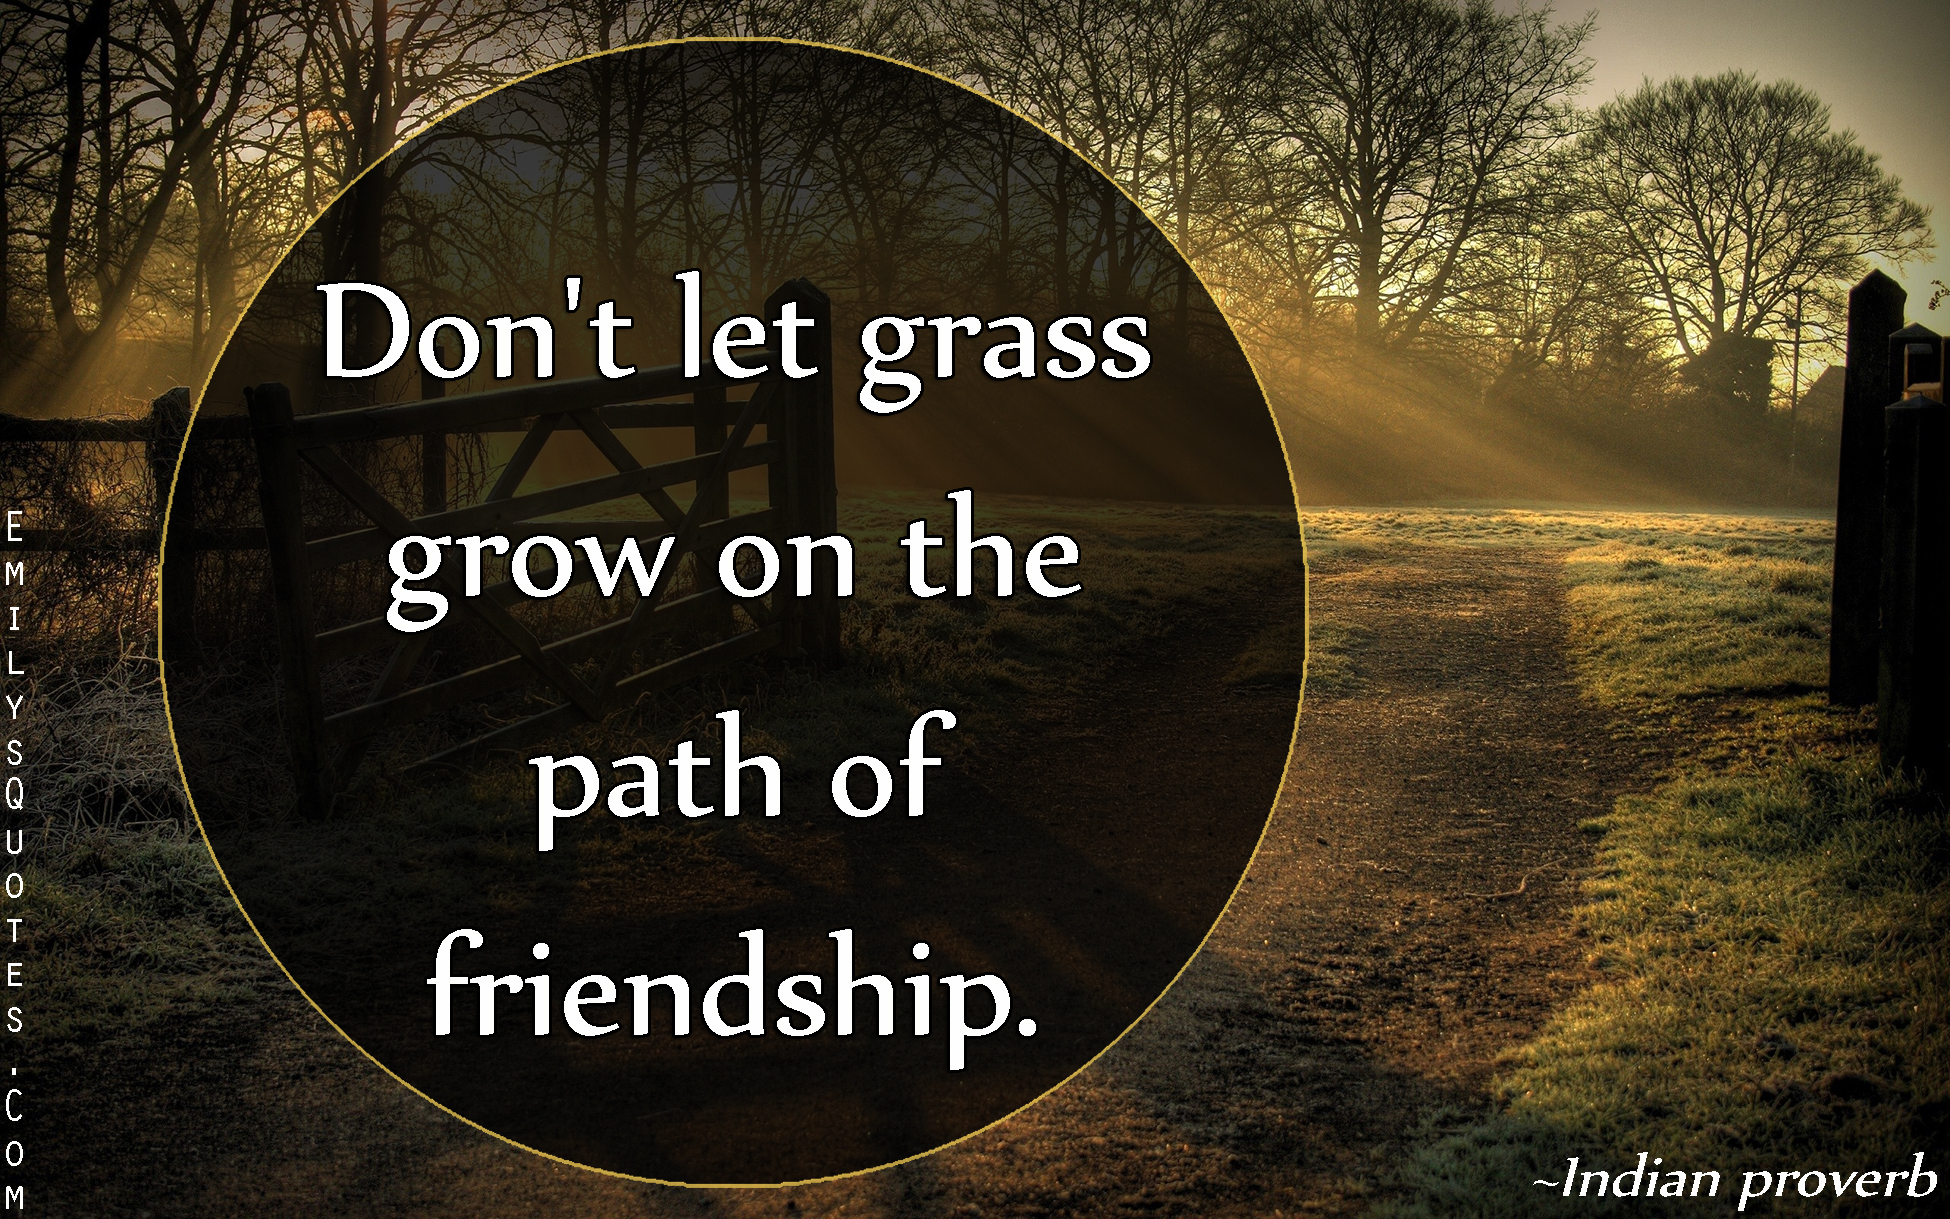 Popular Quotes About Friendship Don't Let Grass Grow On The Path Of Friendship  Popular